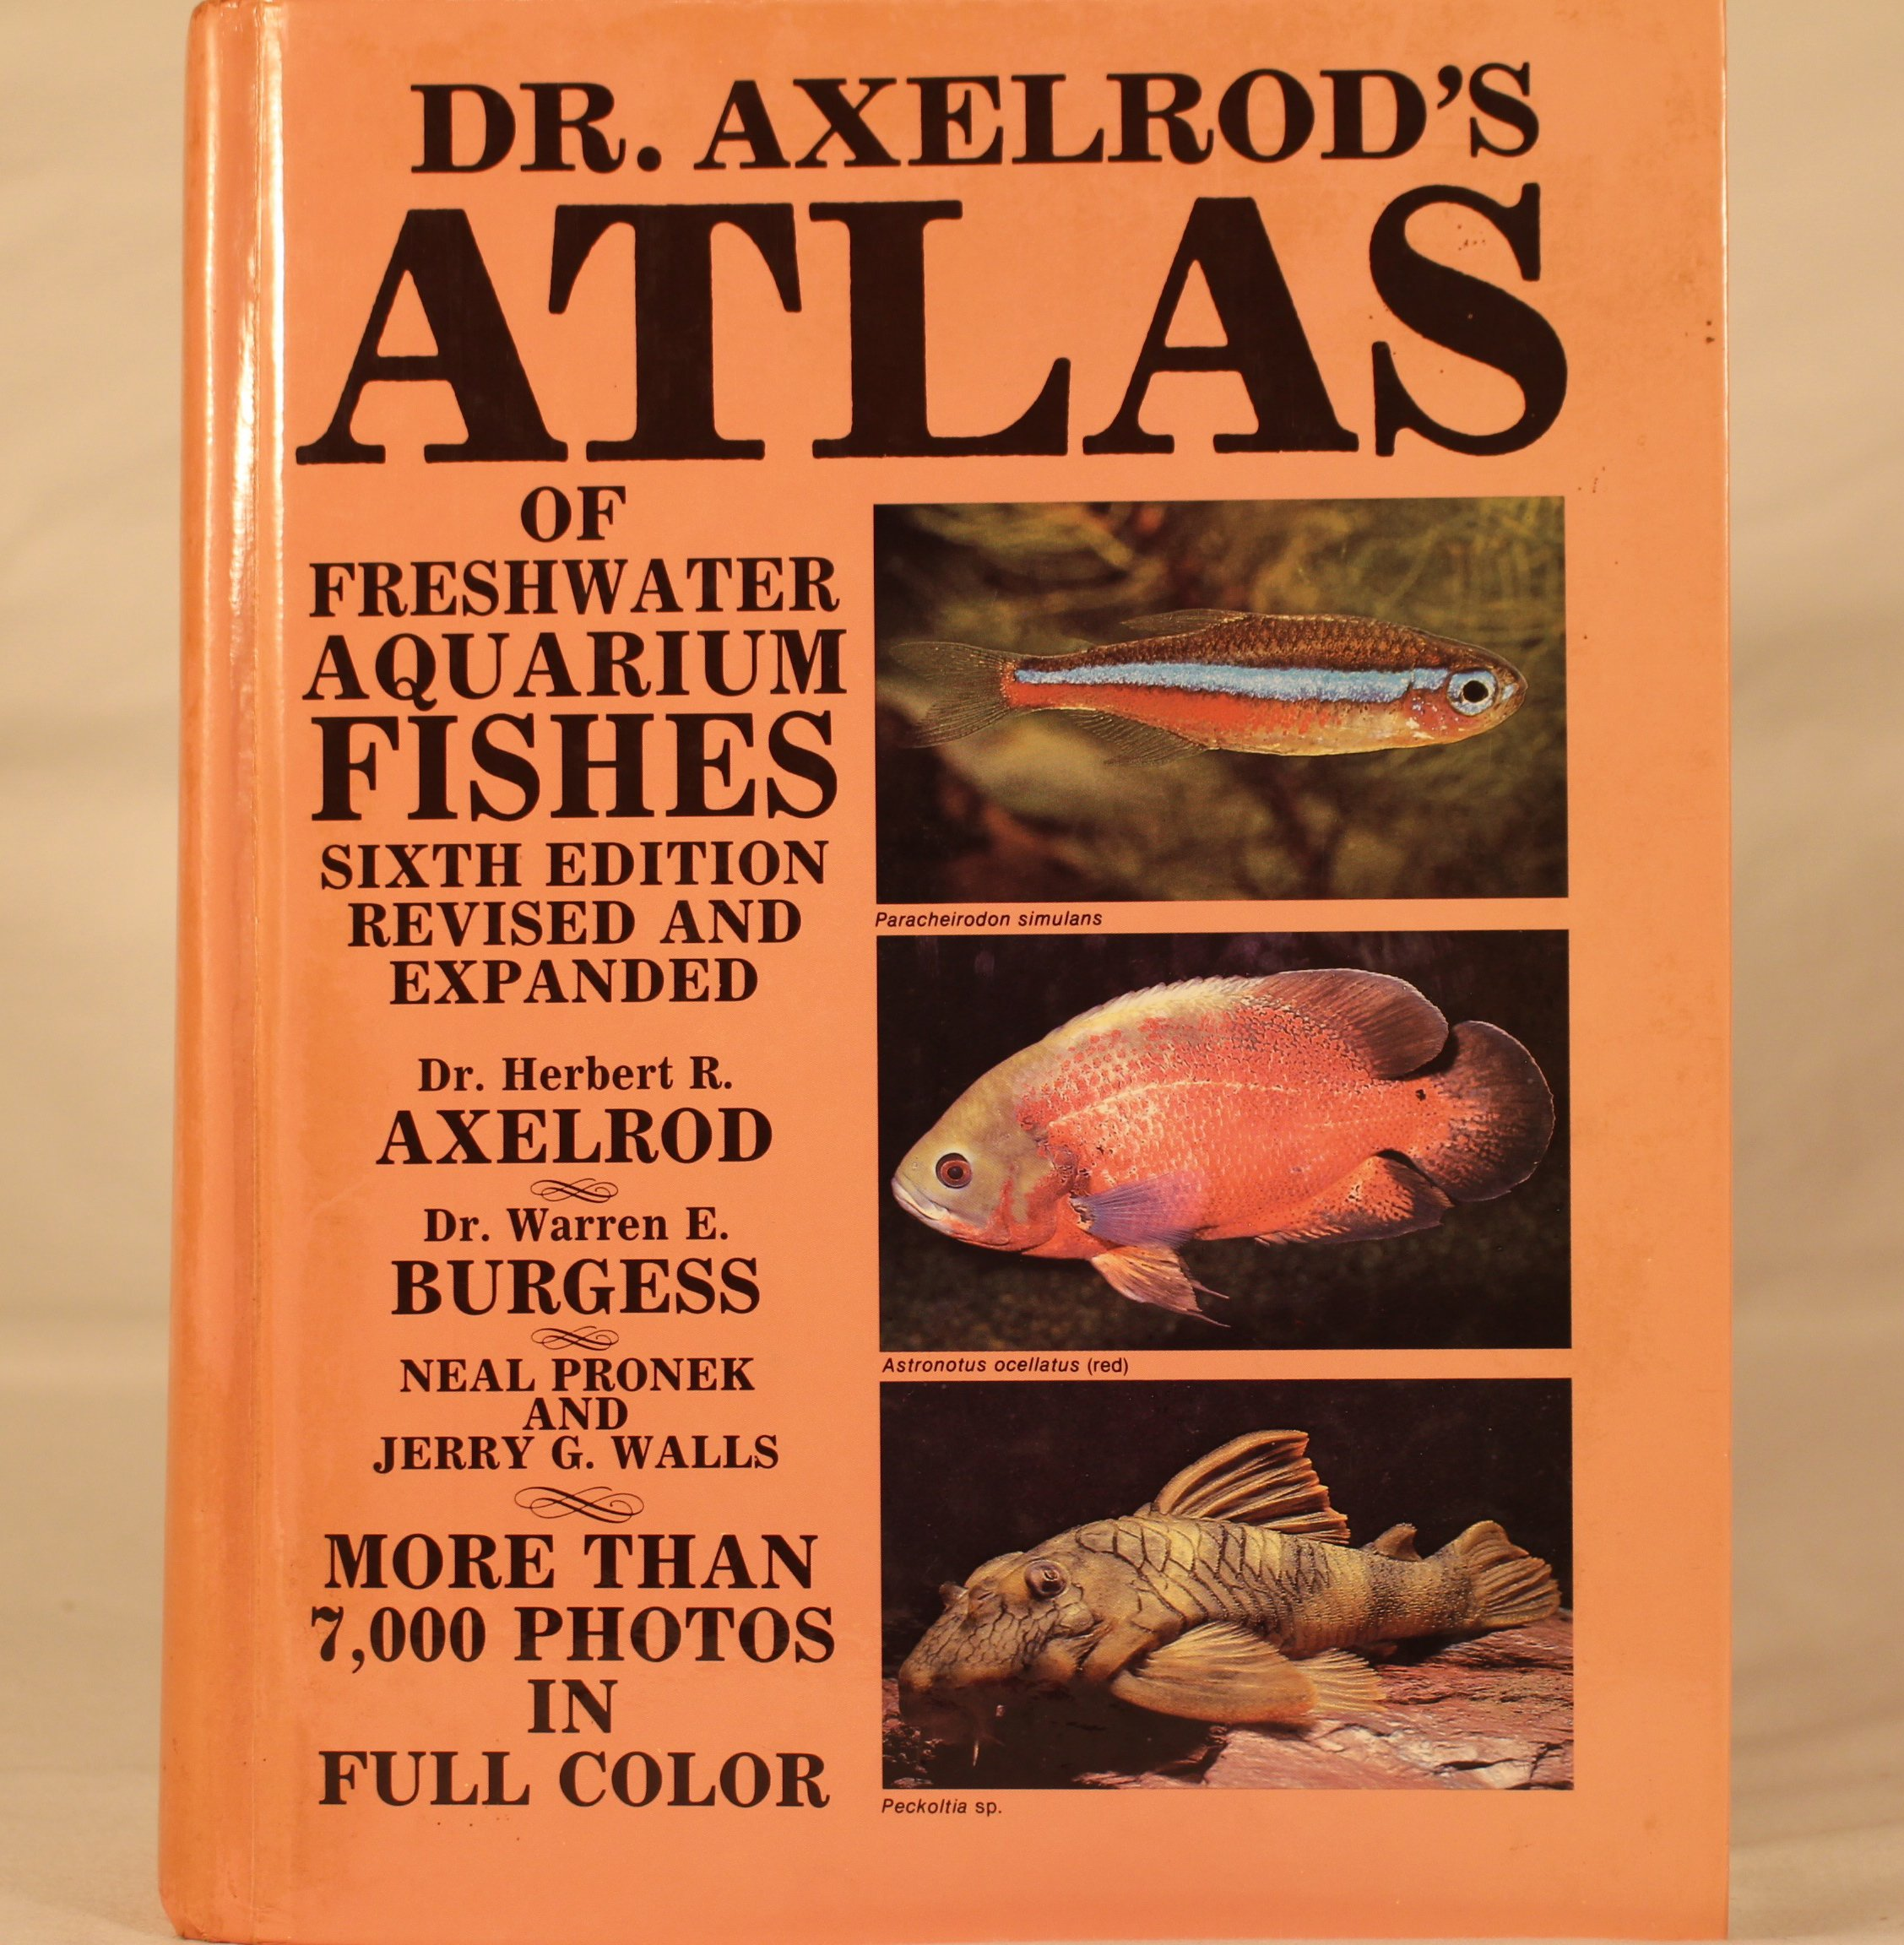 500 freshwater aquarium fish by greg jennings - Atlas Of Freshwater Aquarium Fishes Herbert R Axelrod Etc 9780866222174 Amazon Com Books